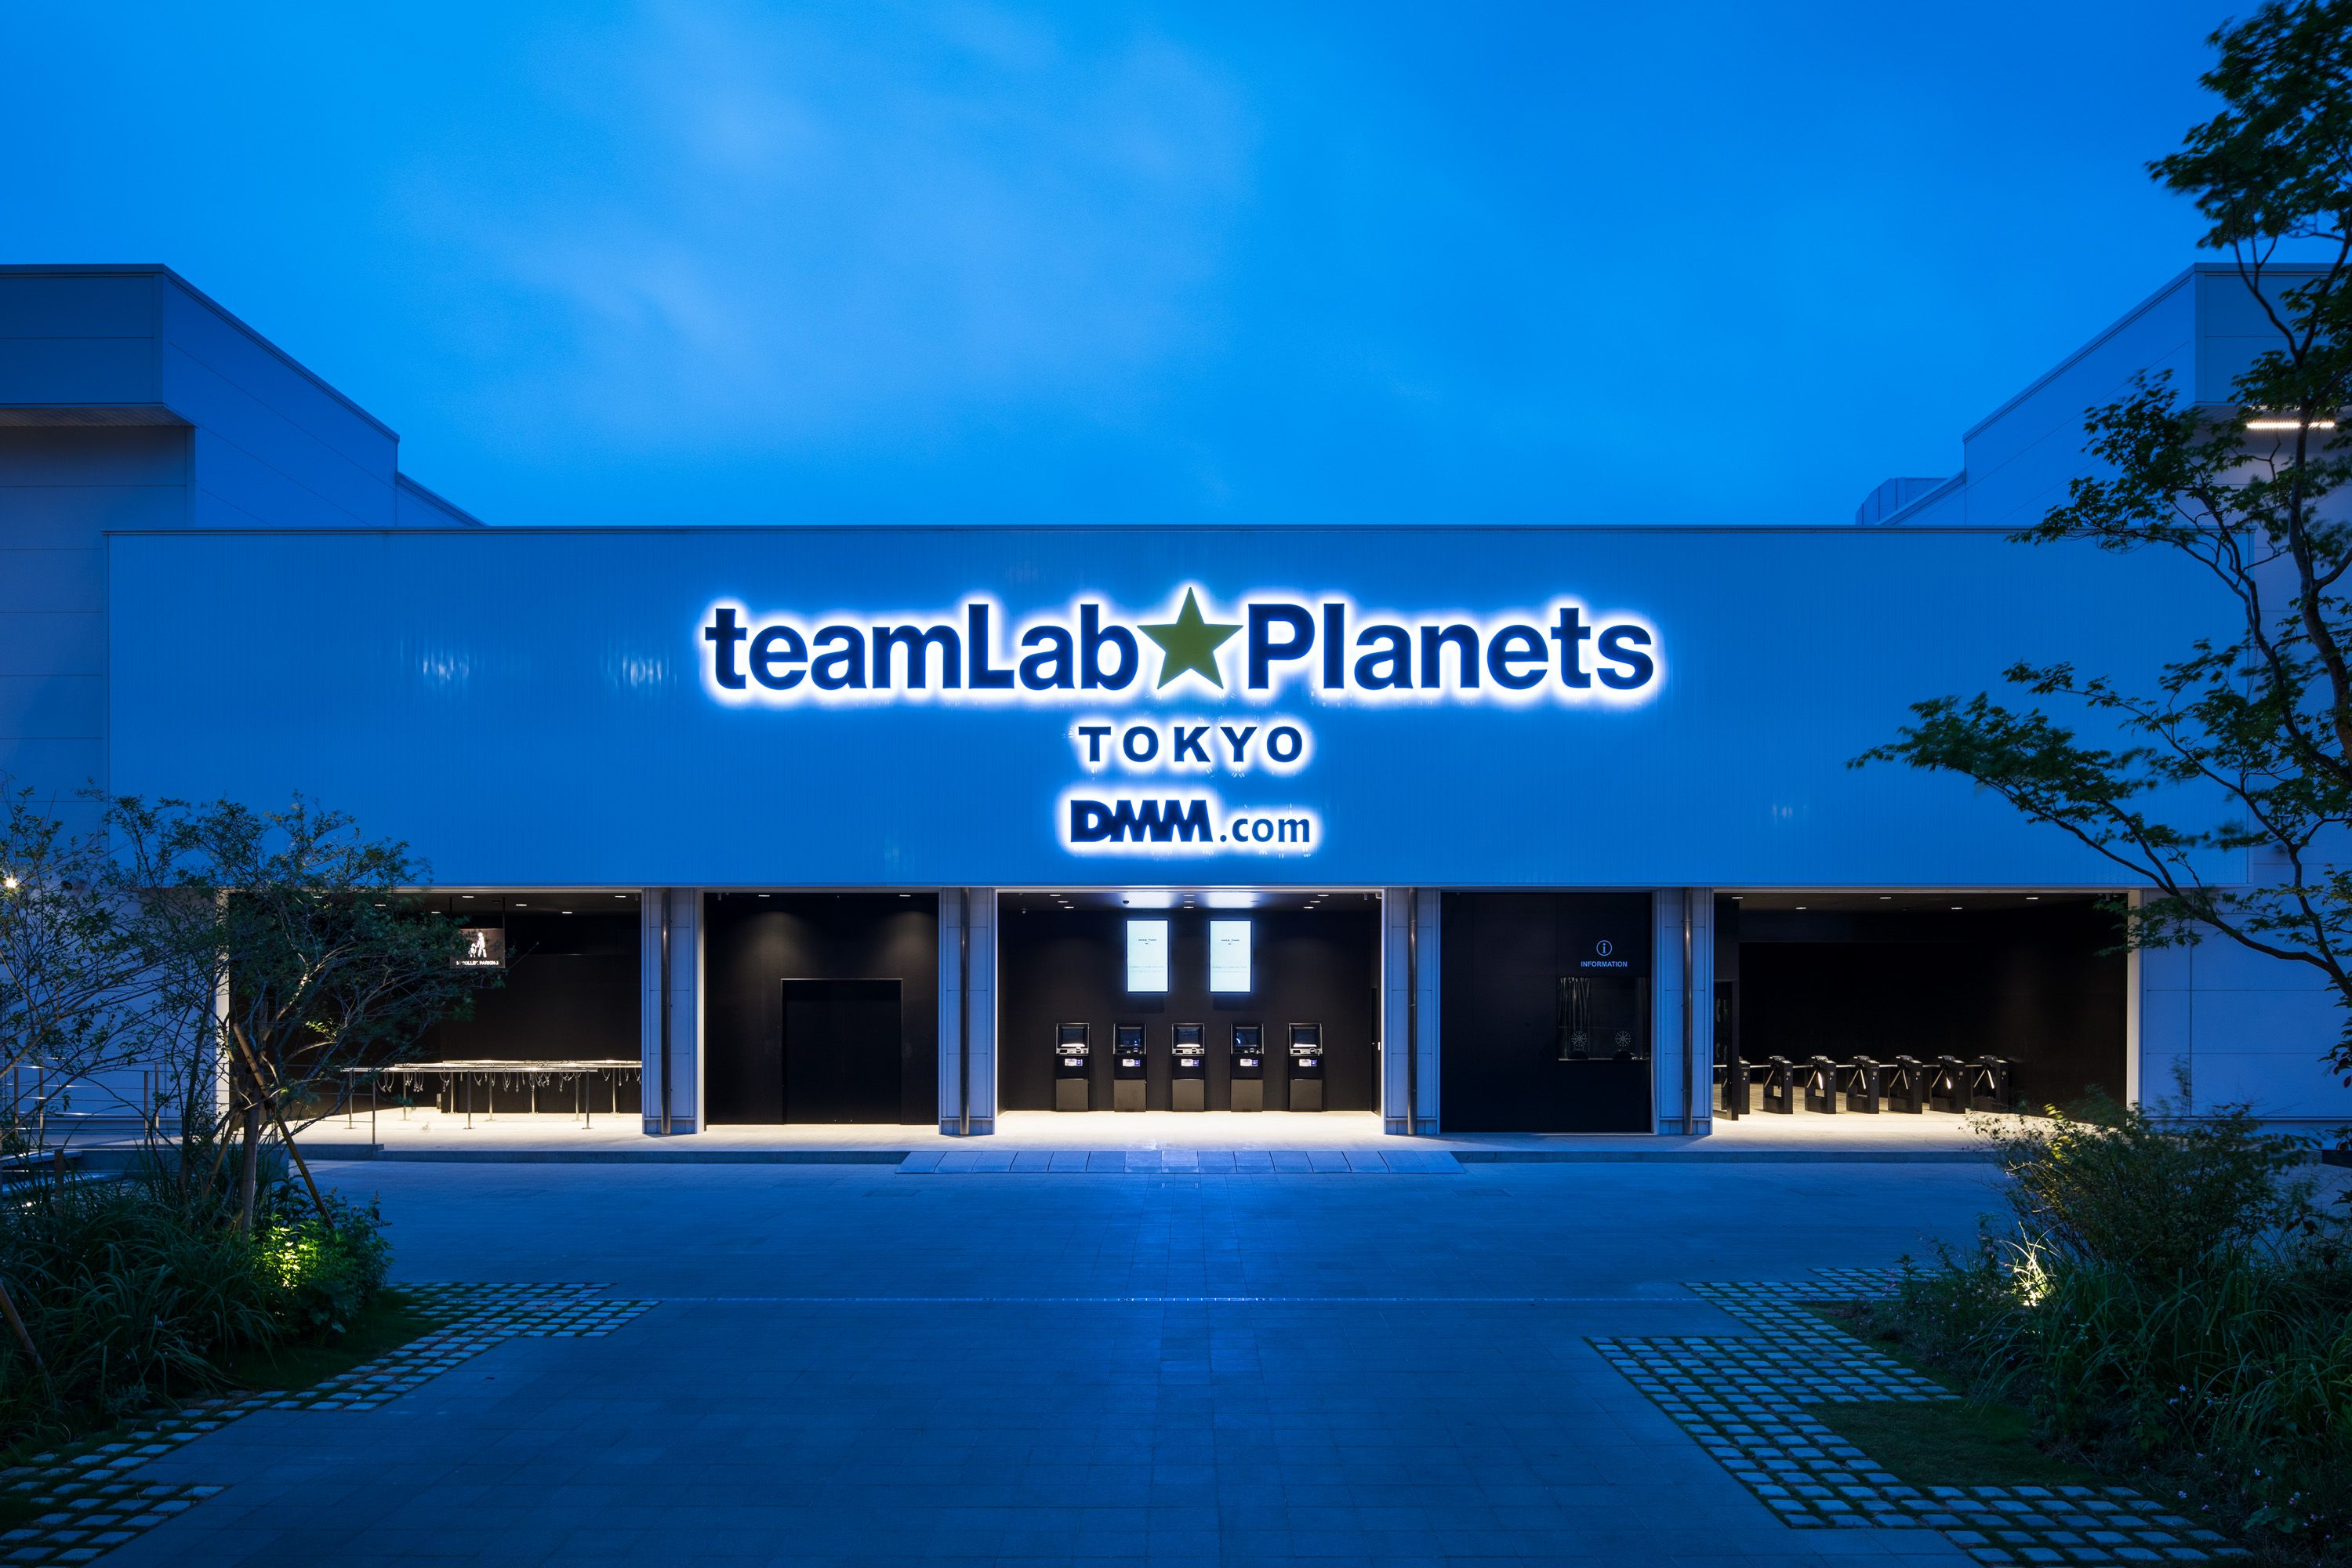 teamLab Planets TOKYO - A Dream World Of Art And Sensory Experiences